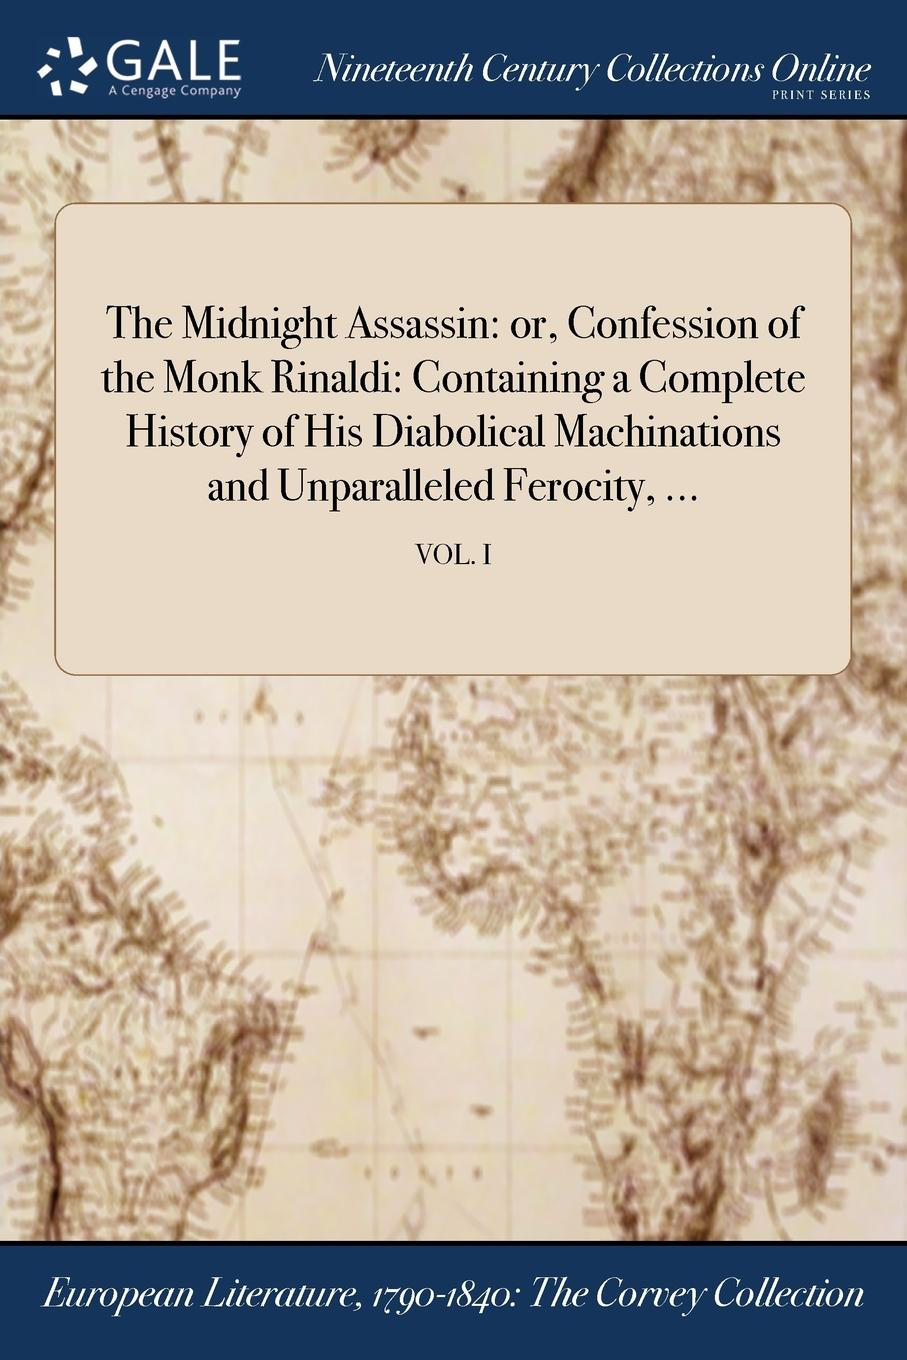 M. l'abbé Trochon The Midnight Assassin. or, Confession of the Monk Rinaldi: Containing a Complete History of His Diabolical Machinations and Unparalleled Ferocity, ...; VOL. I the complete short novels